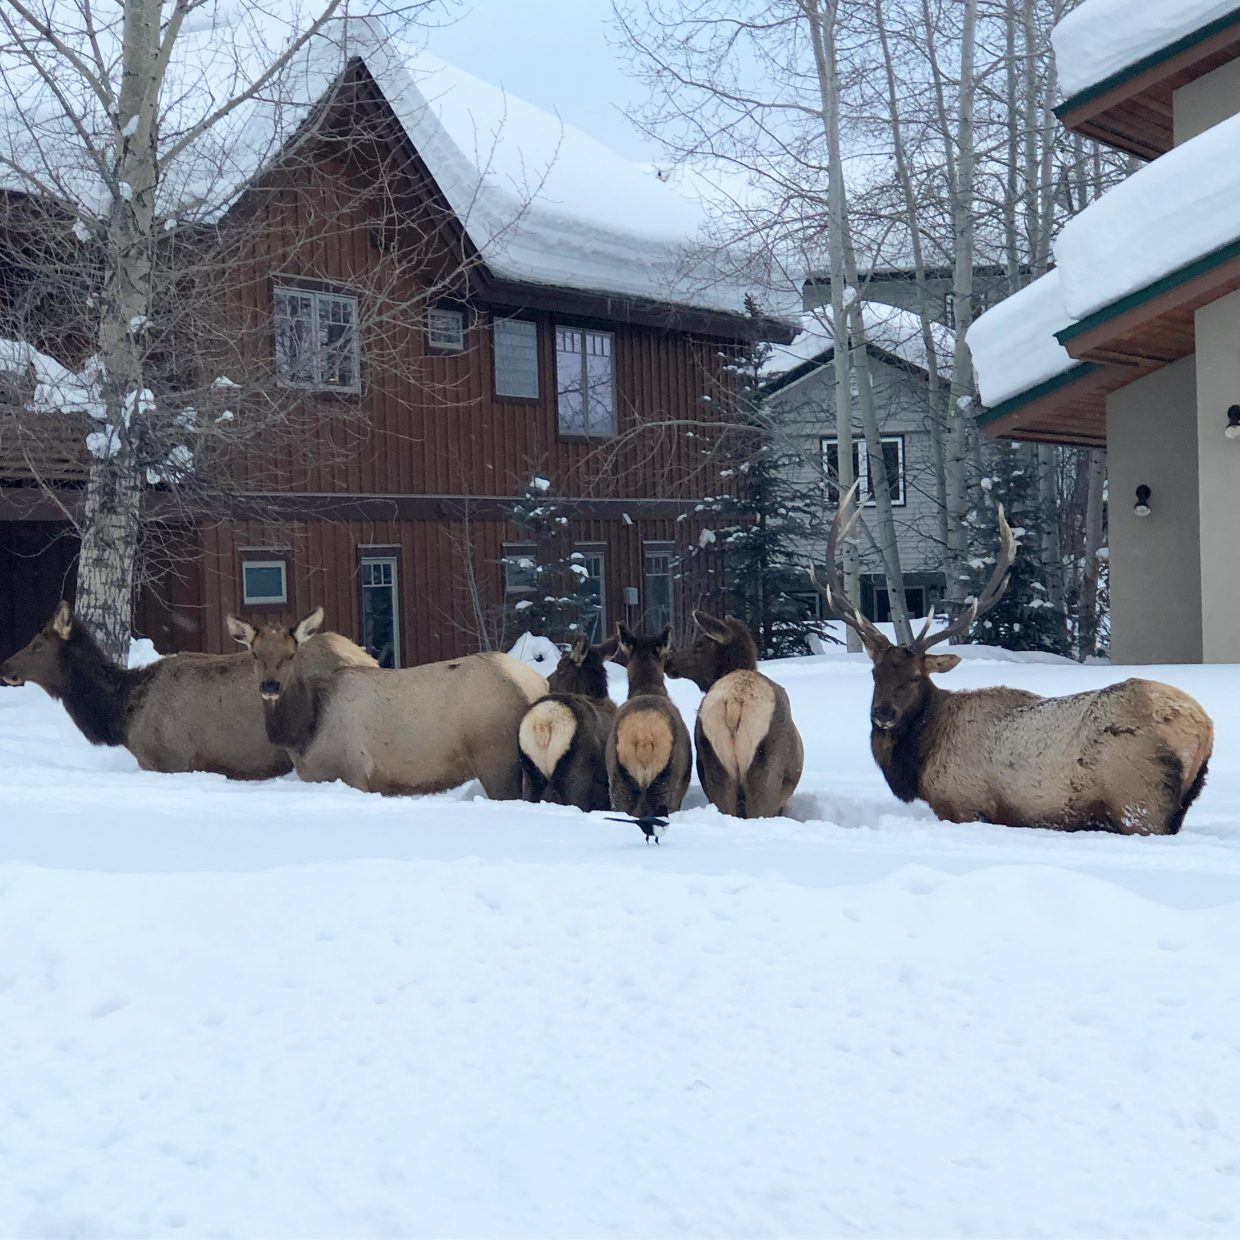 A herd of elk gather in a courtyard.